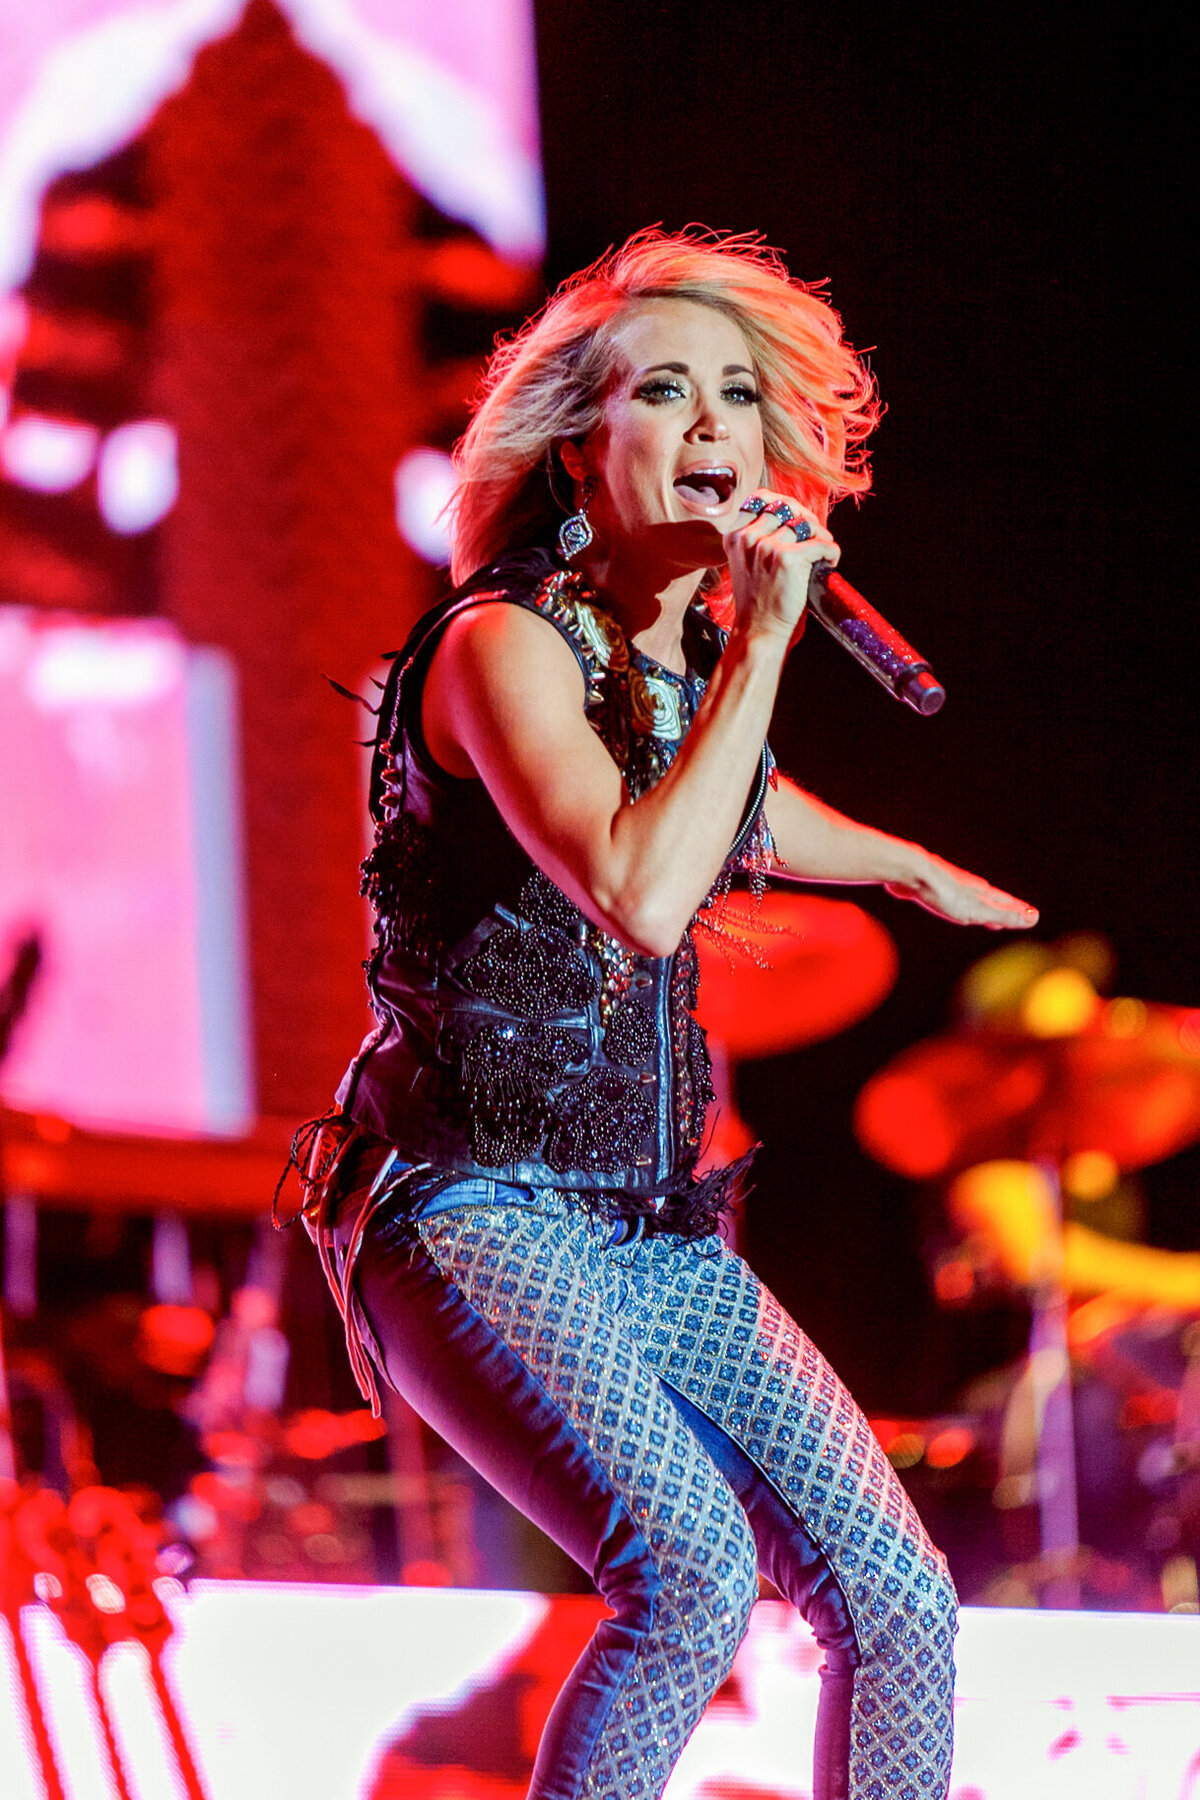 015-Carrie-Underwood-Stagecoach-2